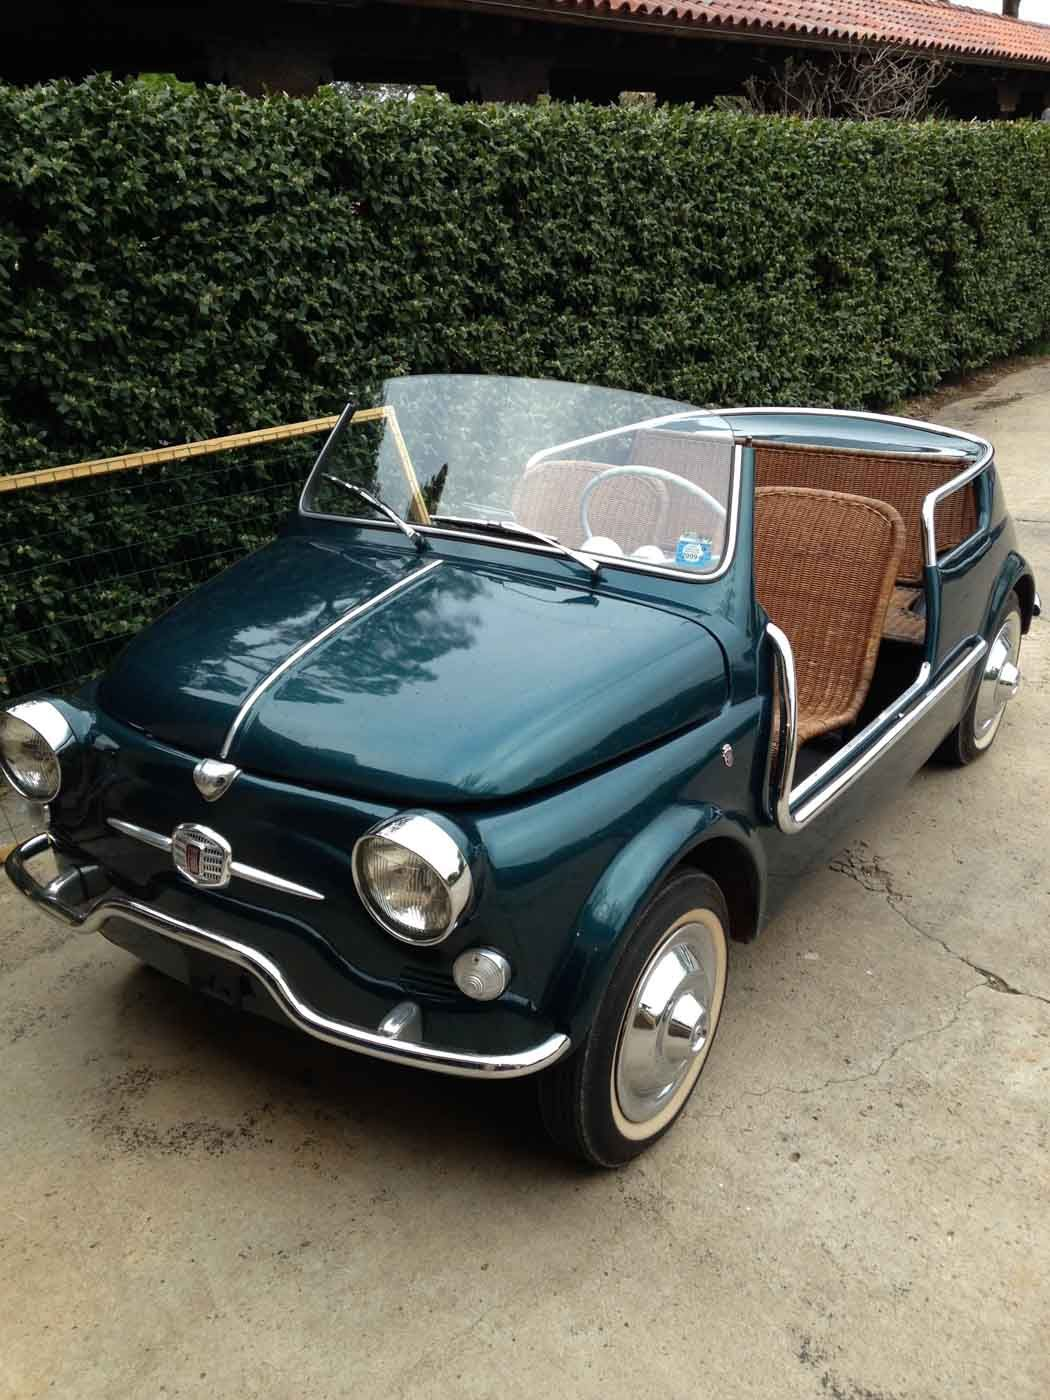 This Fiat Jolly is An Occasion | Fiat, Cars and Board